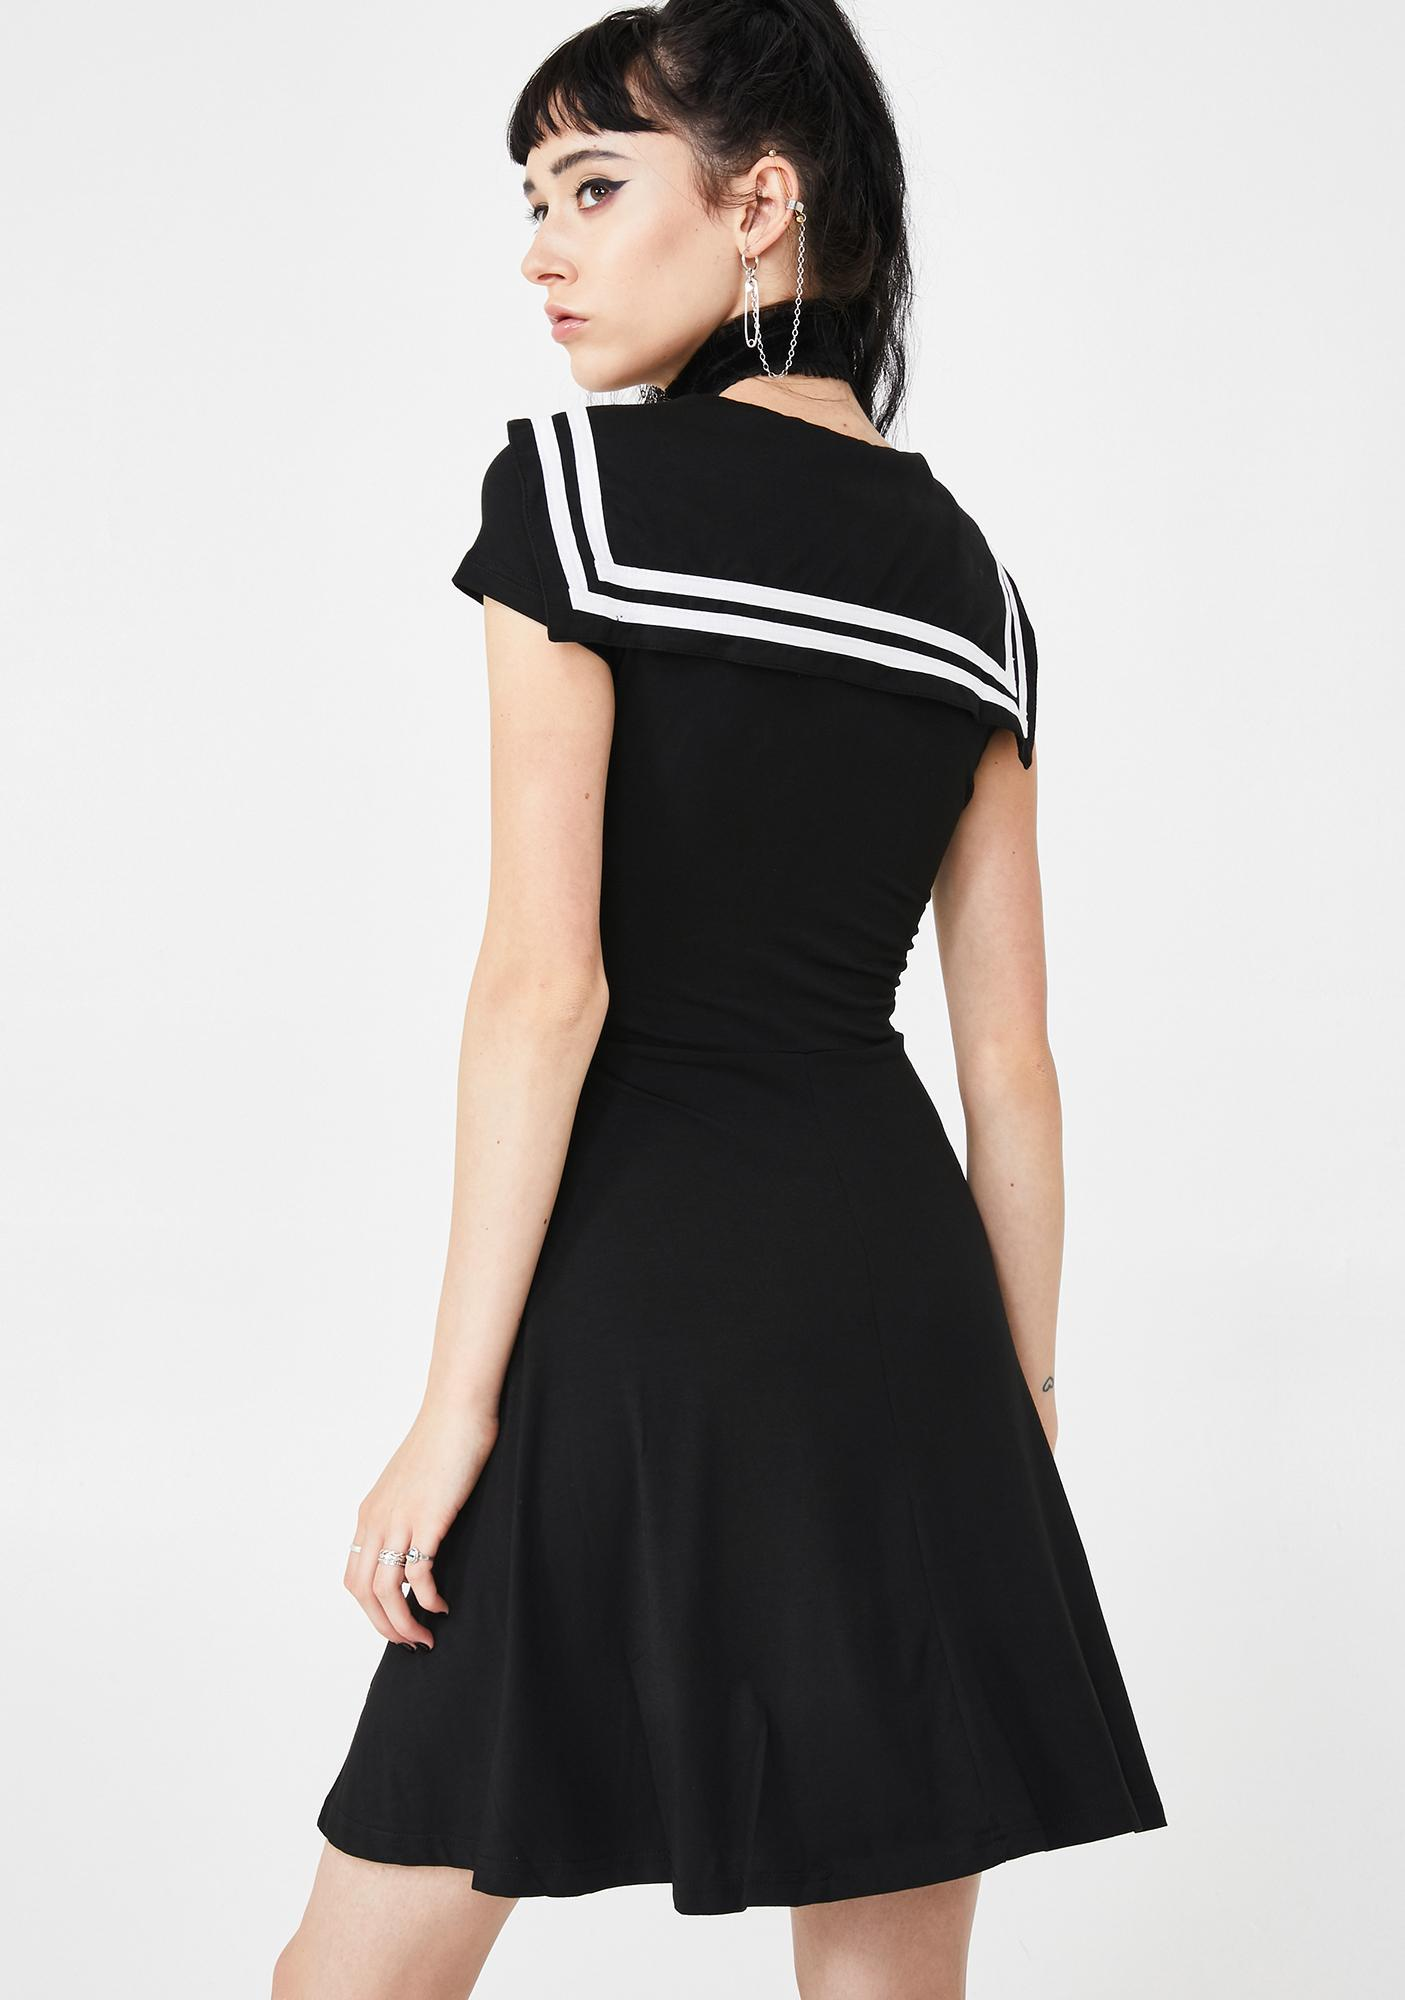 New Look Black Lace Skater Dress